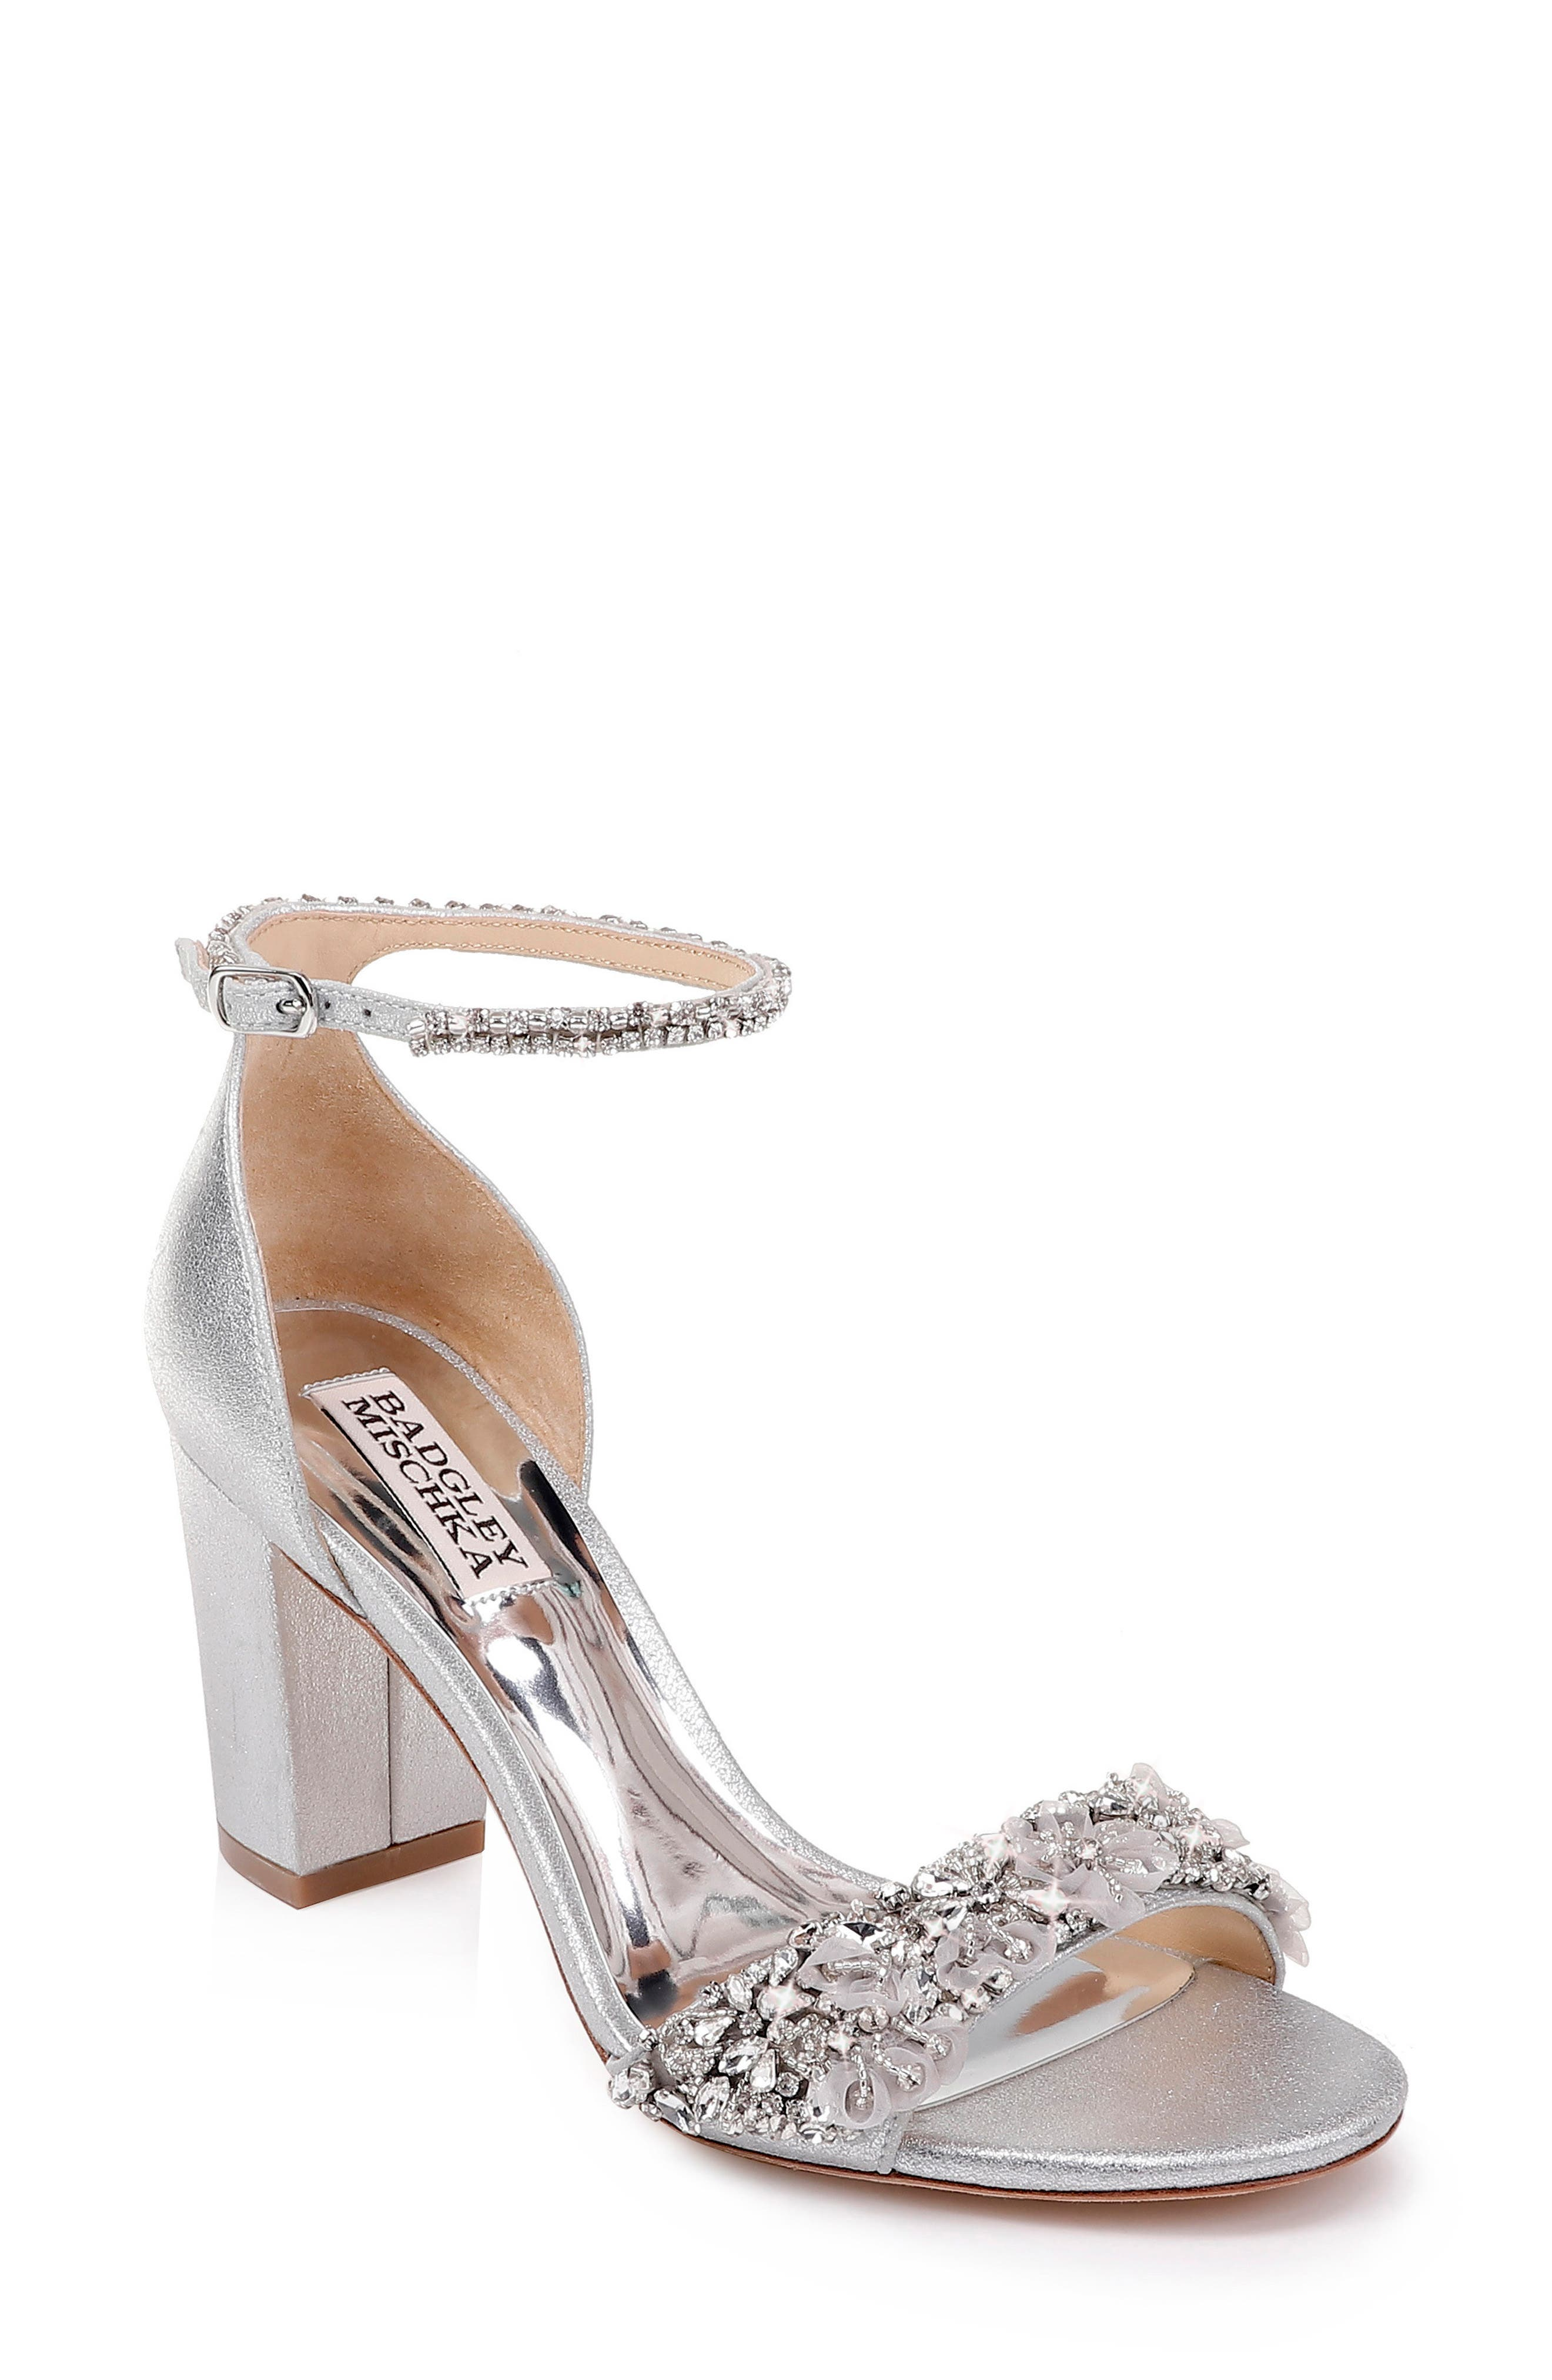 BADGLEY MISCHKA COLLECTION Badgley Mischka Finesse Embellished Ankle Strap Sandal, Main, color, SILVER METALLIC SATIN